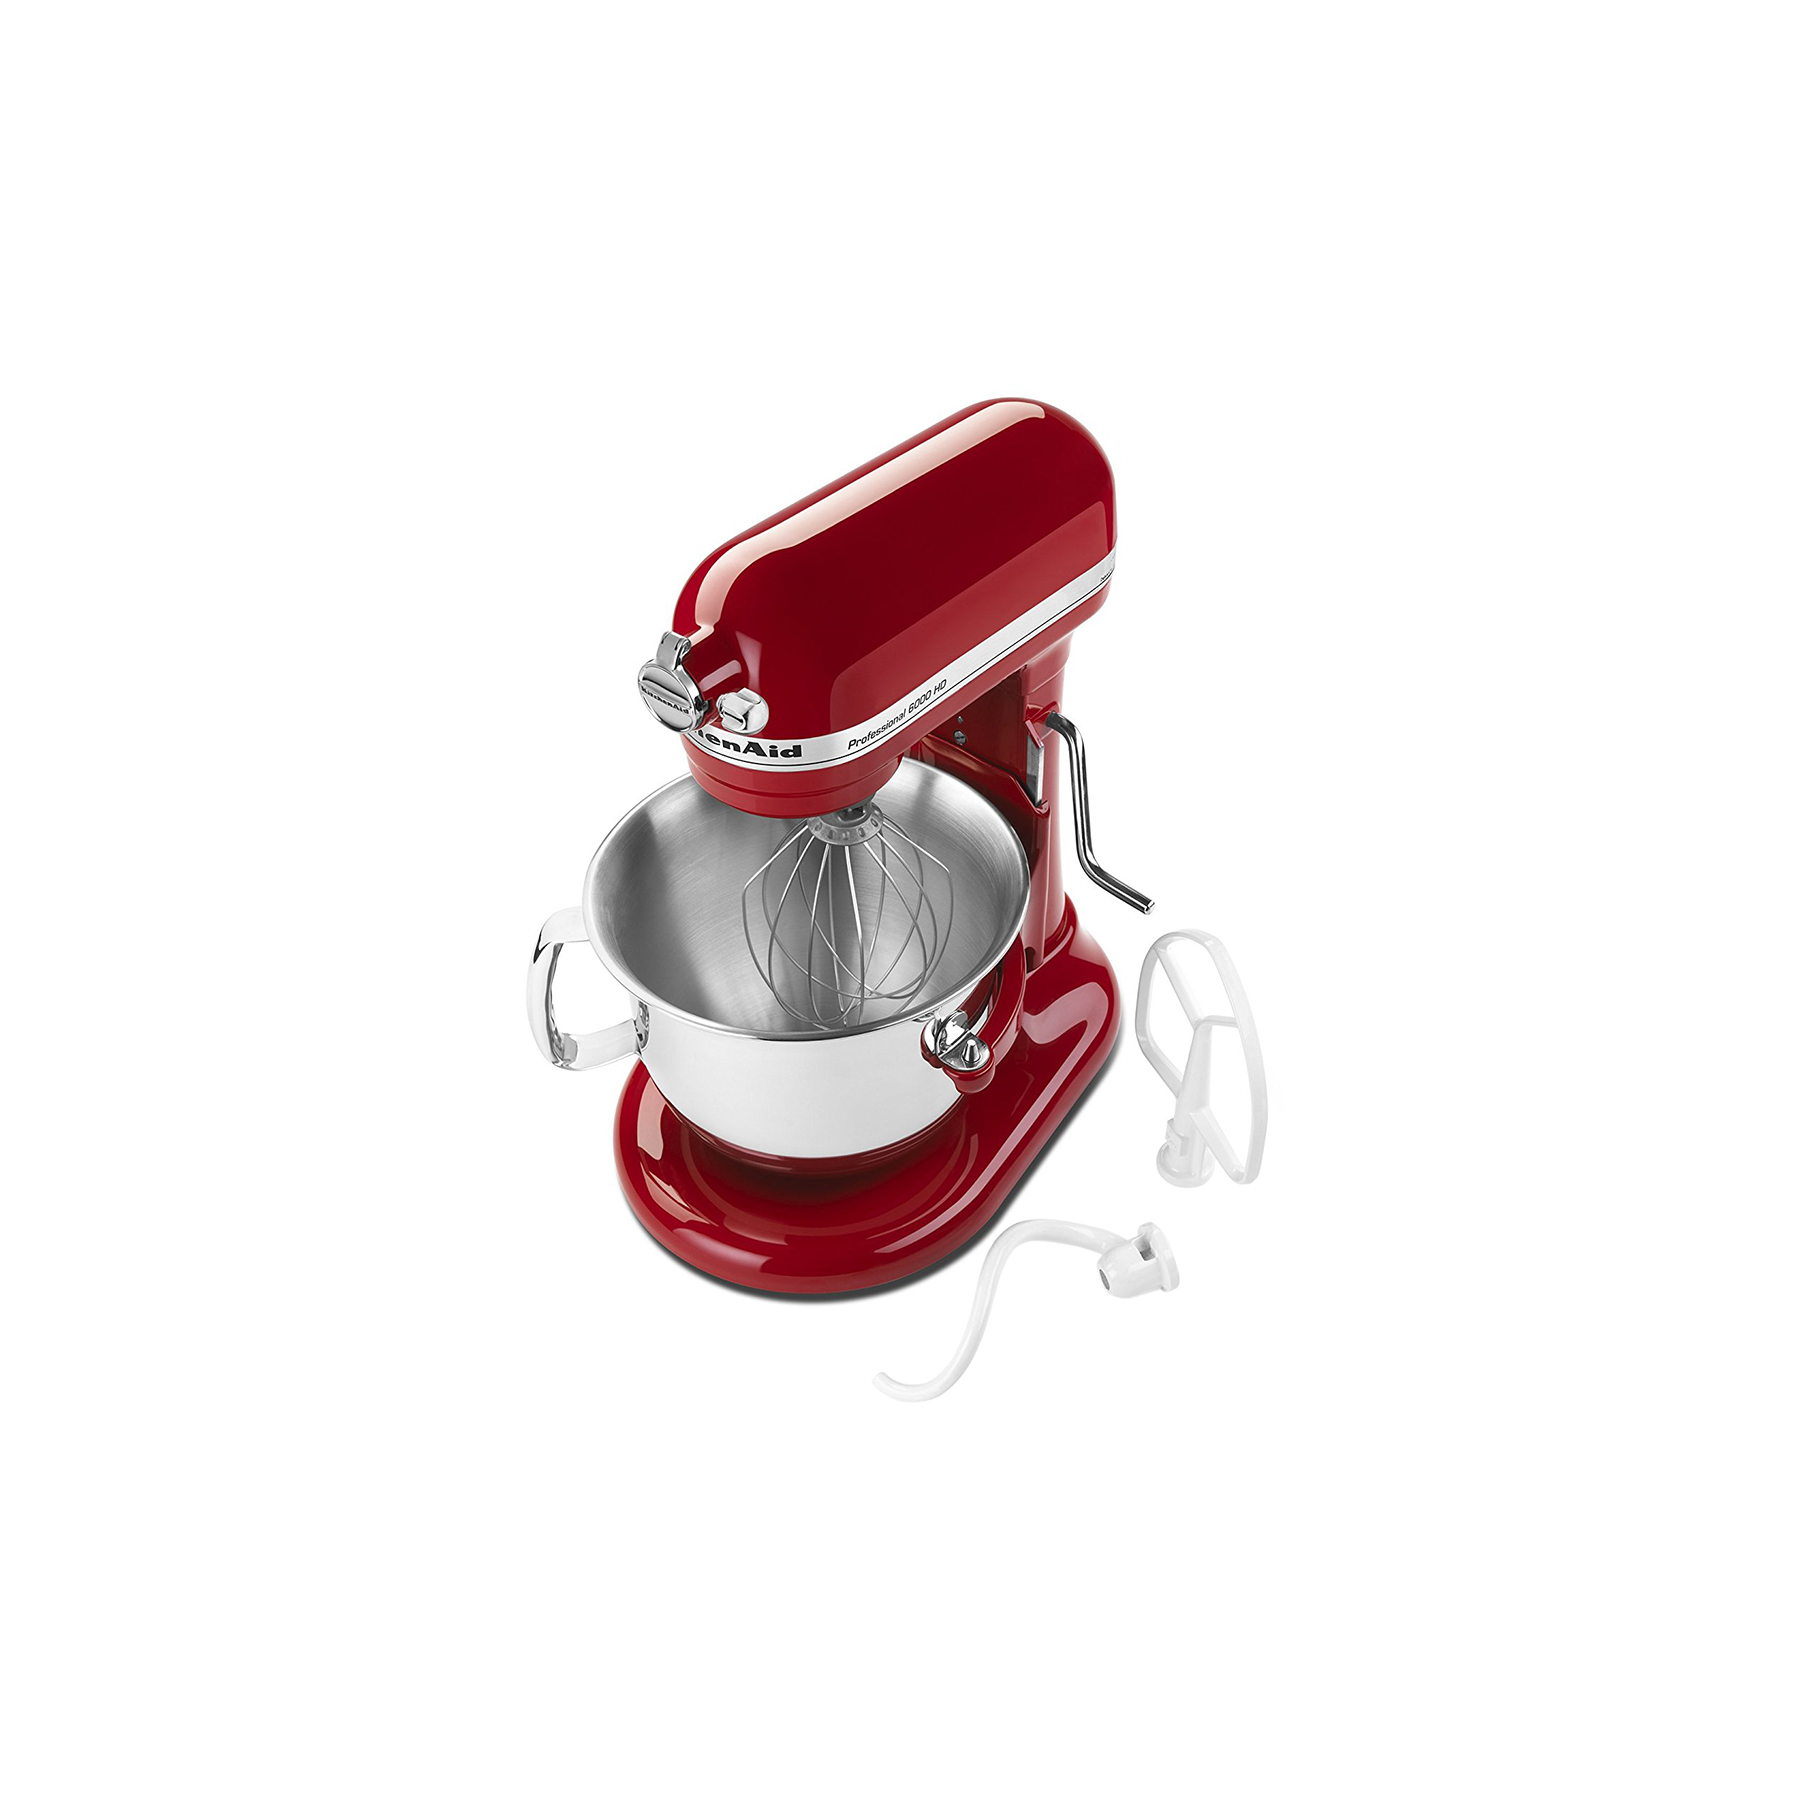 KitchenAid Professional Stand Mixer, 6 Quart